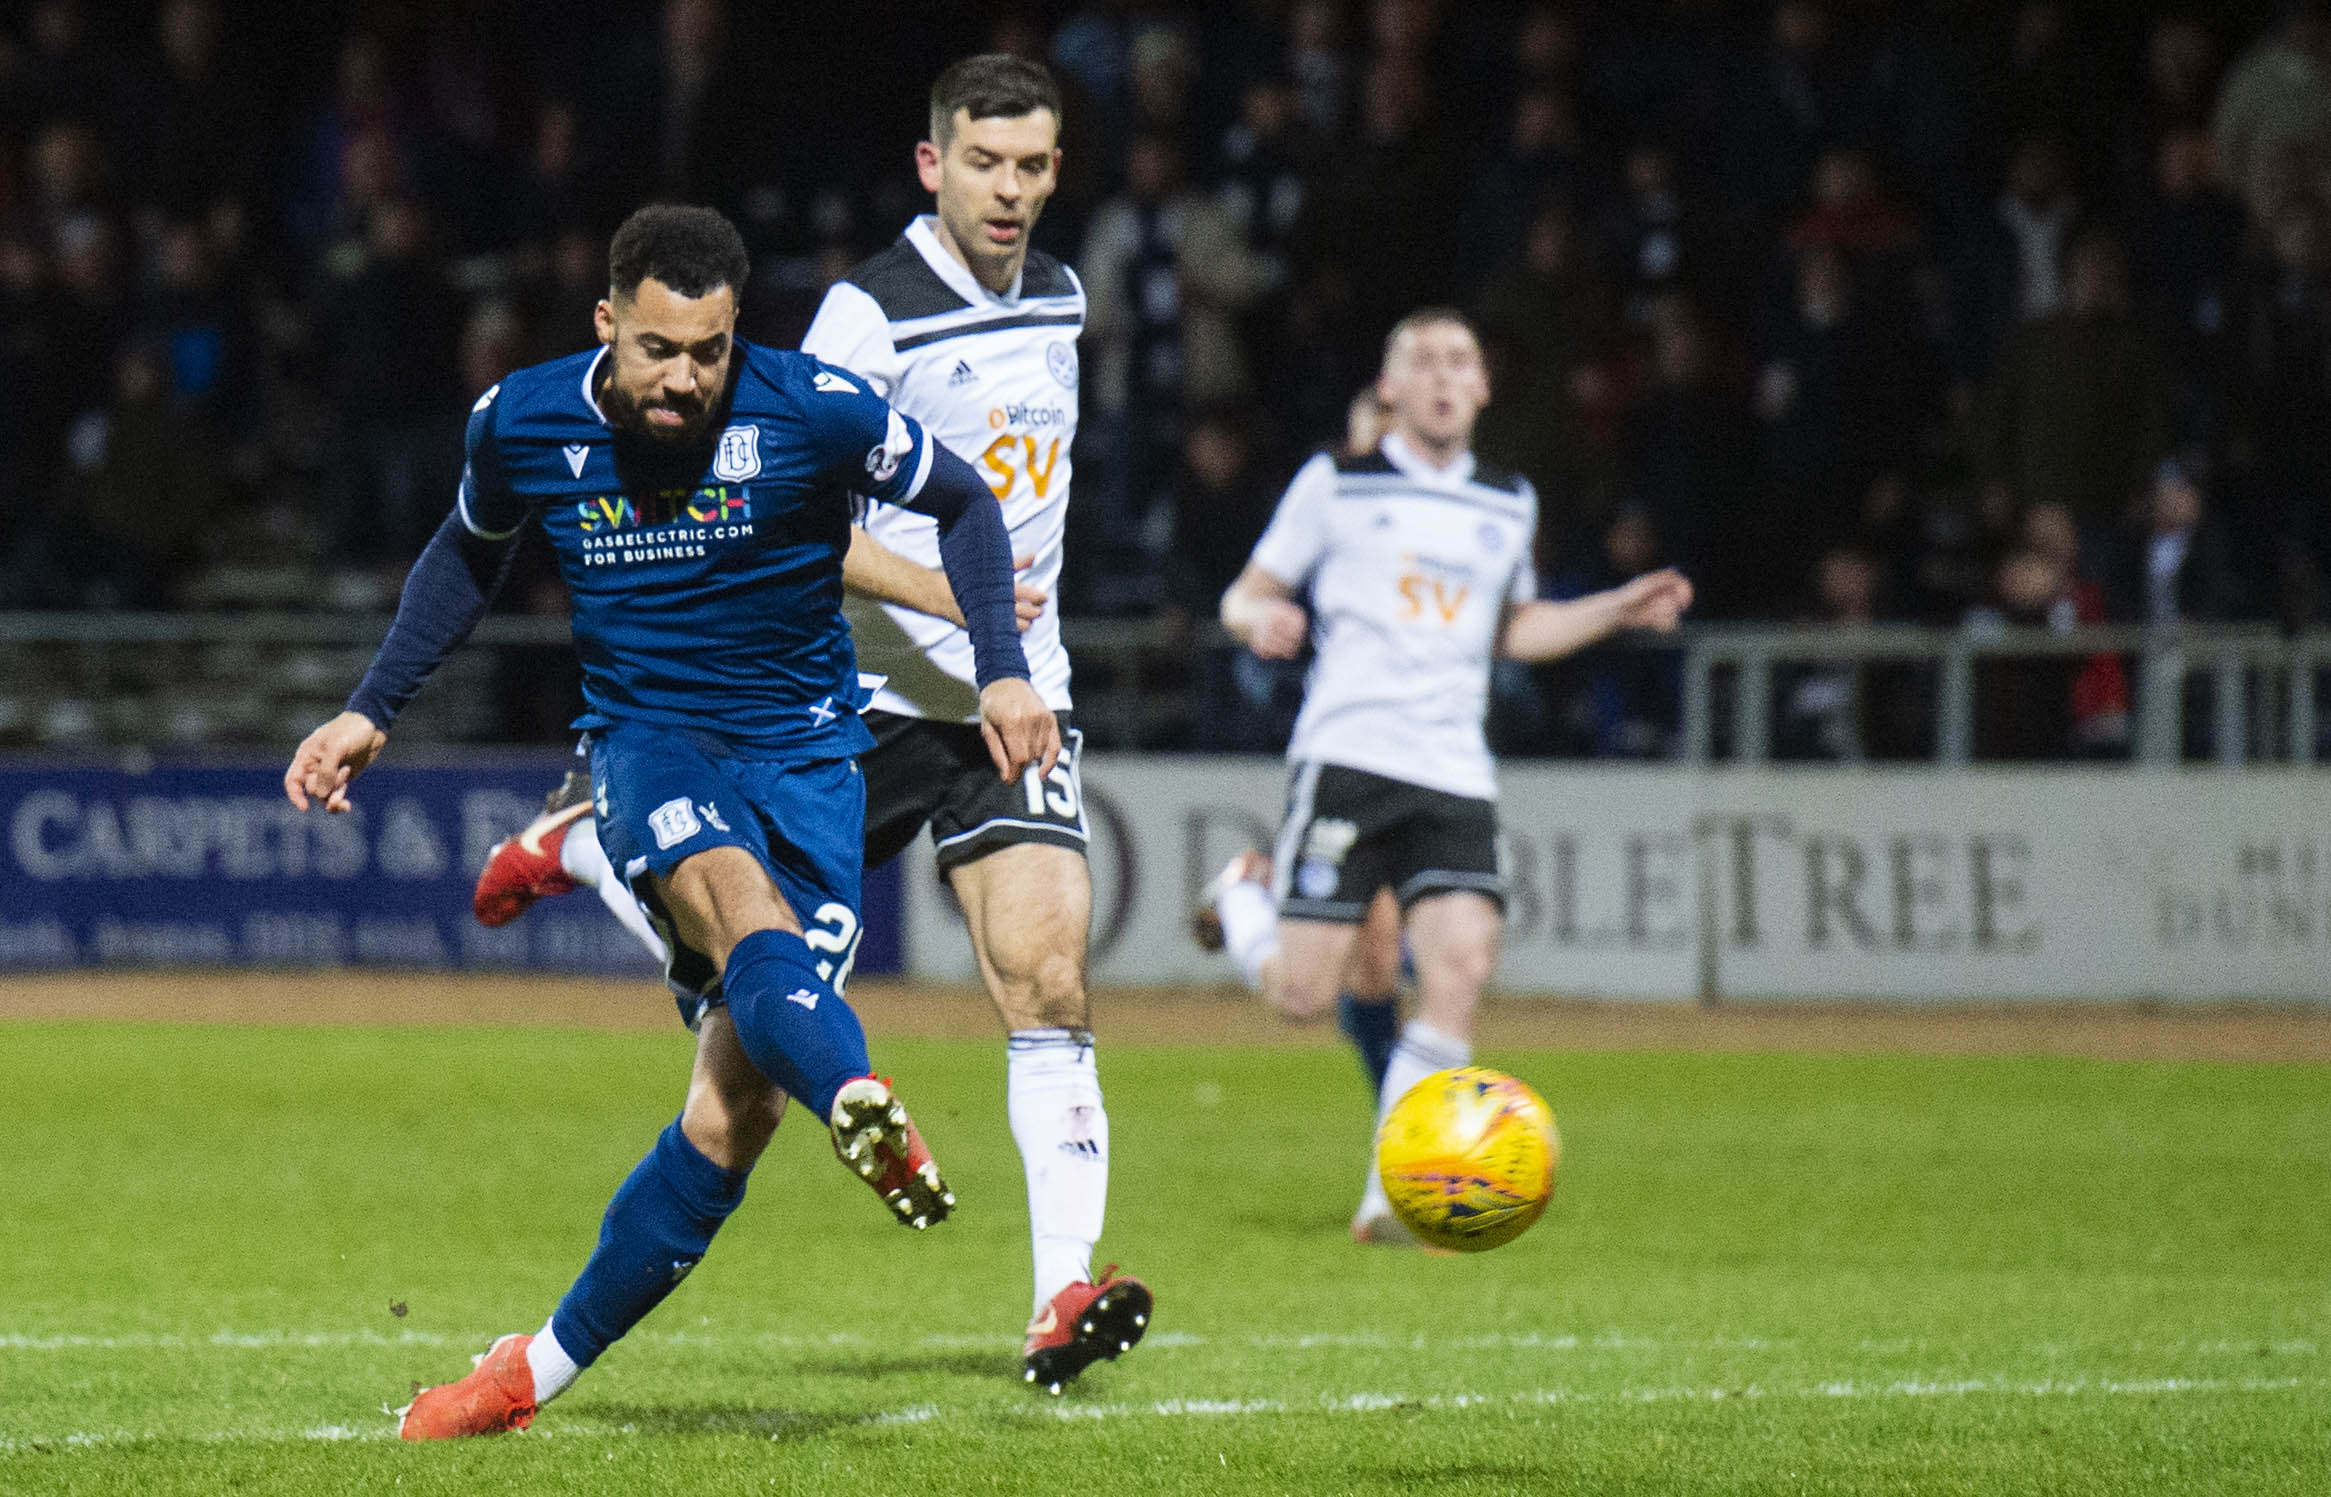 Kane Hemmings strikes to give Dundee the lead against Ayr.